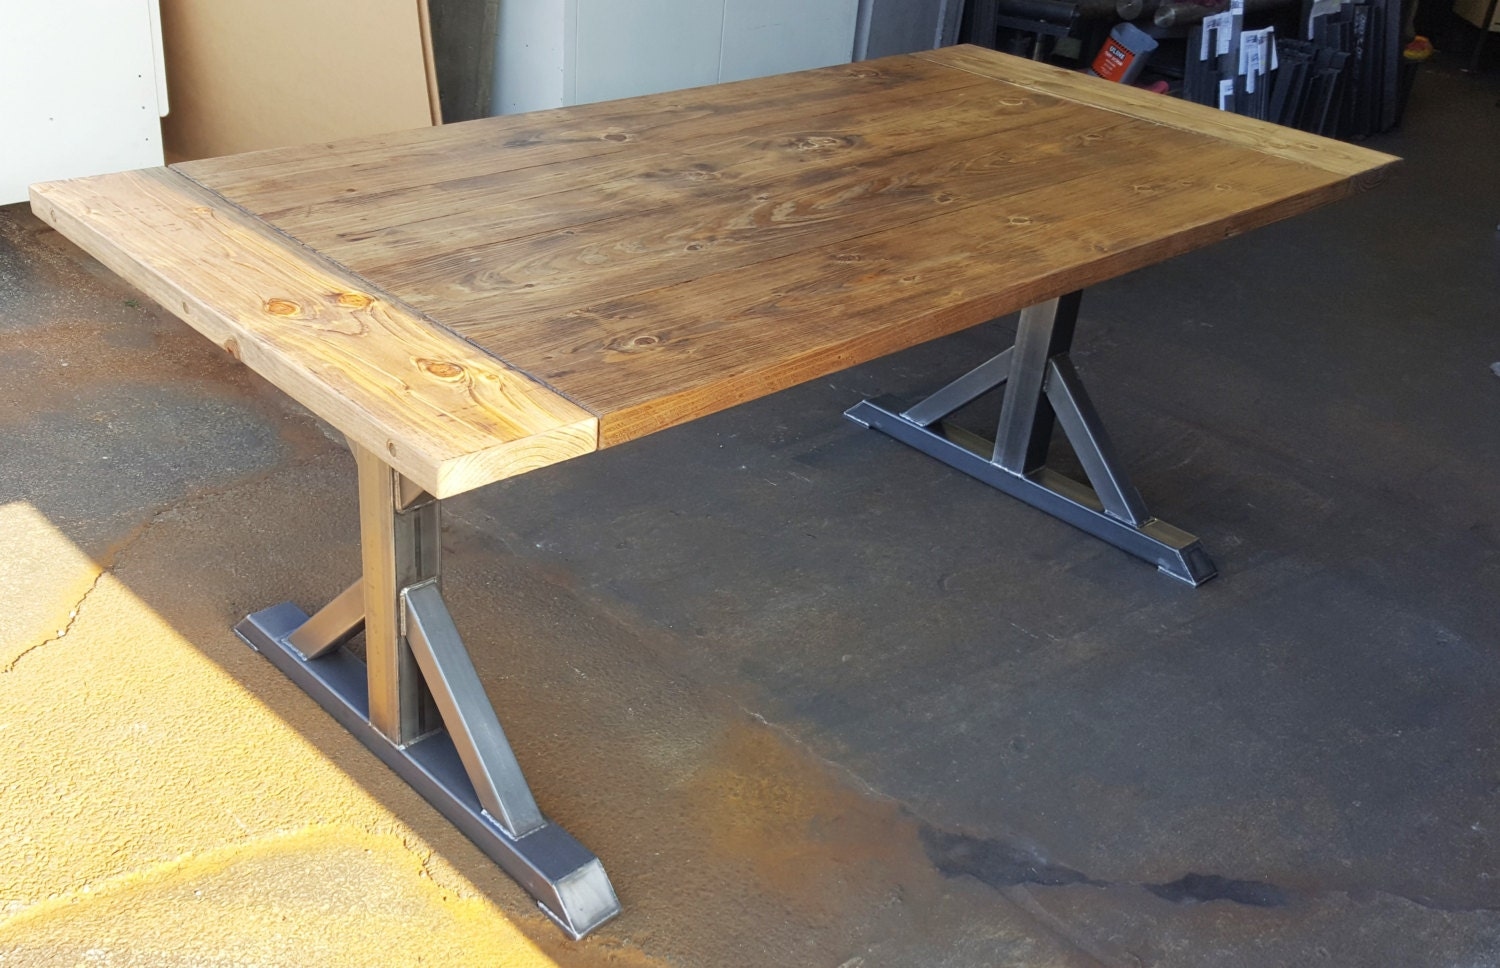 Trestle table legs model tr10 heavy duty sturdy metal for How to make a sturdy table base